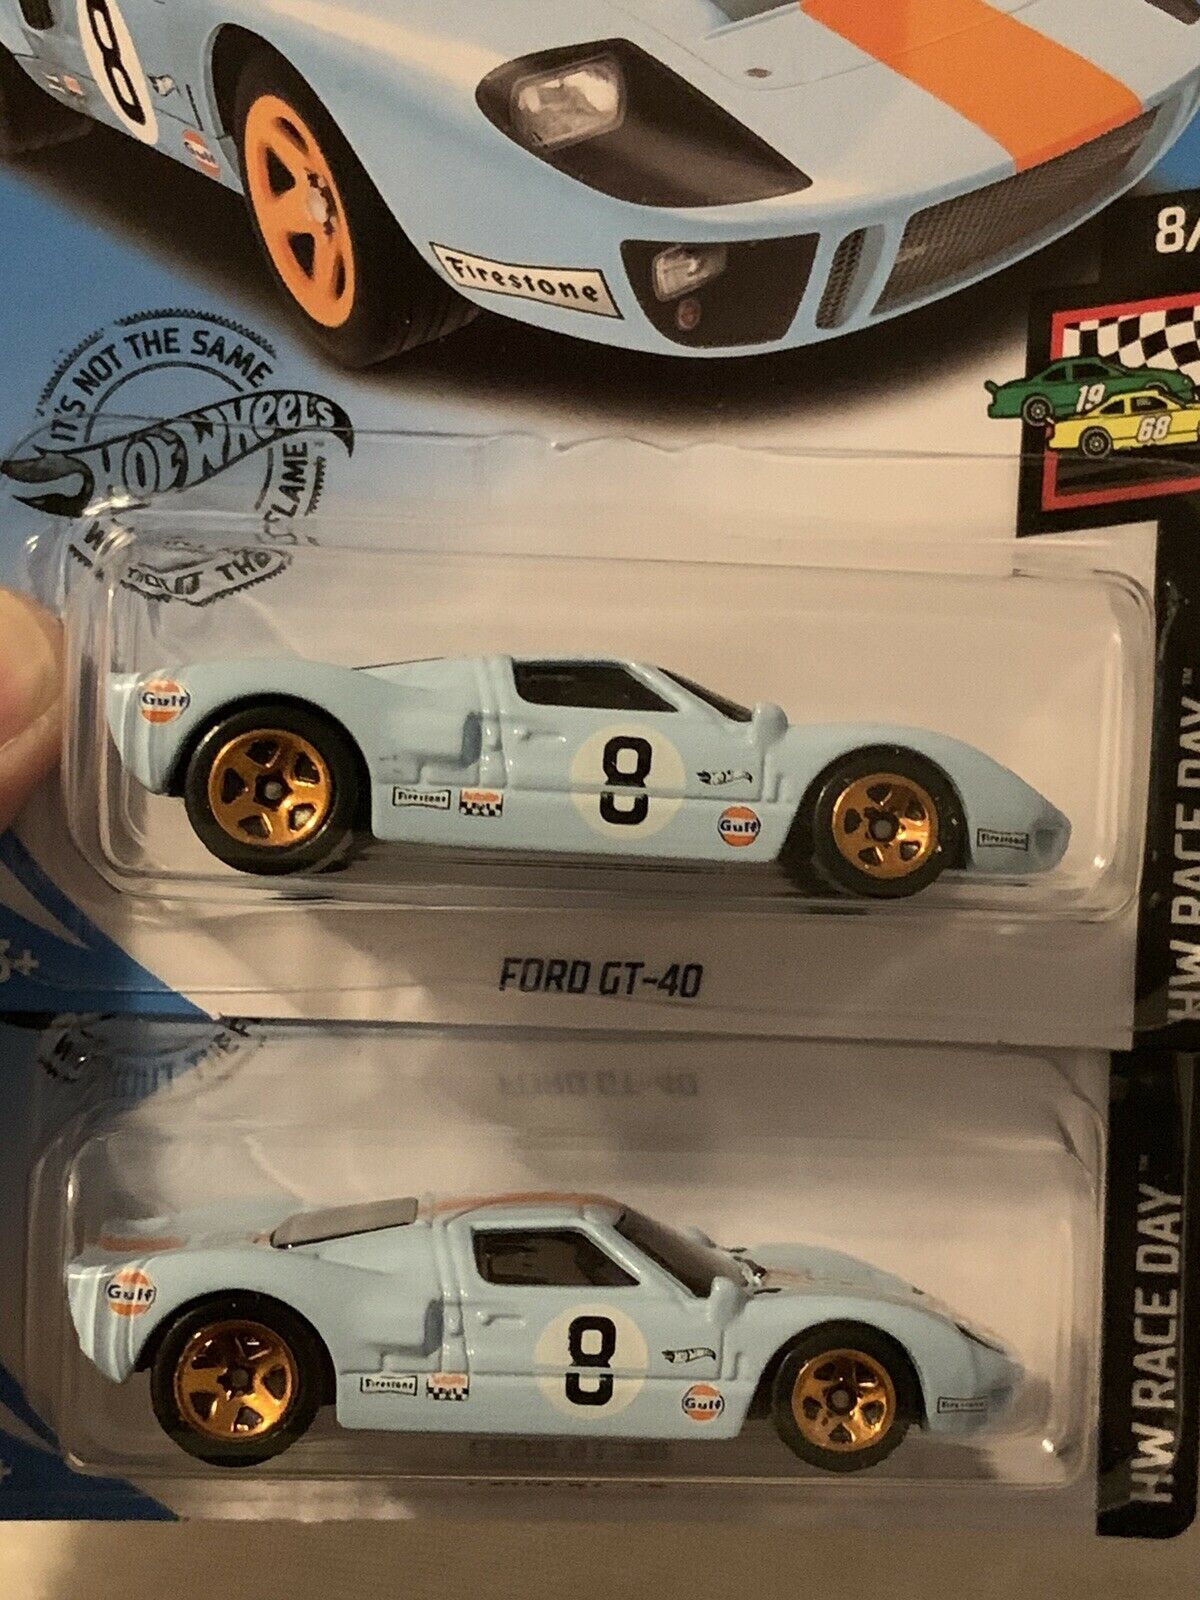 Hot Wheels Ford Gt 40 X2 Gulf Race Day Liveriers Perfect For Ford Vs Ferrari 5 0 Ford Gt40 Hot Wheels Ford Gt Hot Wheels Gulf Racing